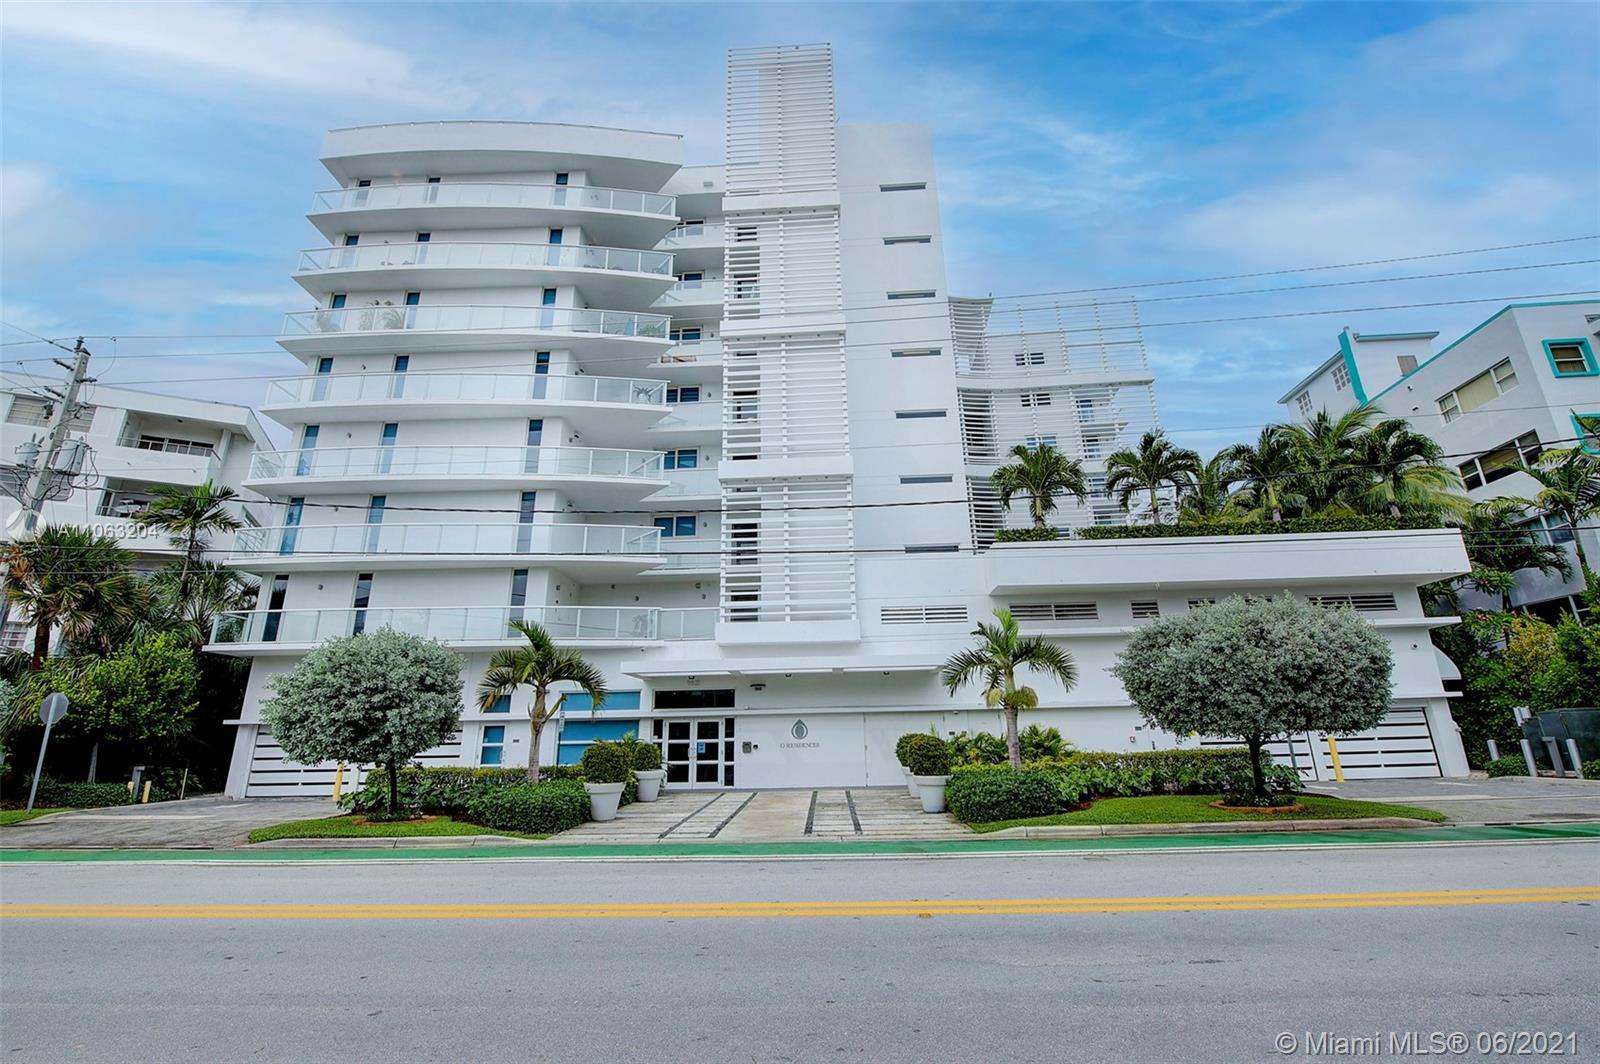 """O Residences is a boutique condo building located on a waterfront lot in Miami Beach's Bay Harbor Islands. The 9-story building offers 41 exclusive condos, with only 6 residences per floor. Located near the Bal Harbour Shops and Bal Harbour Beach. This waterfront condominium feature floor-to-ceiling glass, glass-paneled terraces, marble flooring and """"smart"""" technology. The kitchen offers Italian-style cabinetry, stainless-steel appliances and natural quartz countertops. O Residences Bay Harbor Islands offers resort-quality amenities and attentive services. Residents enjoy a third floor amenity deck, with a zero-edge sunset pool, infinity hot tub and cabanas. O Residences also features a bayfront water deck, a state-of-the-art fitness center, a waterfront summer kitchen, a boat dock"""